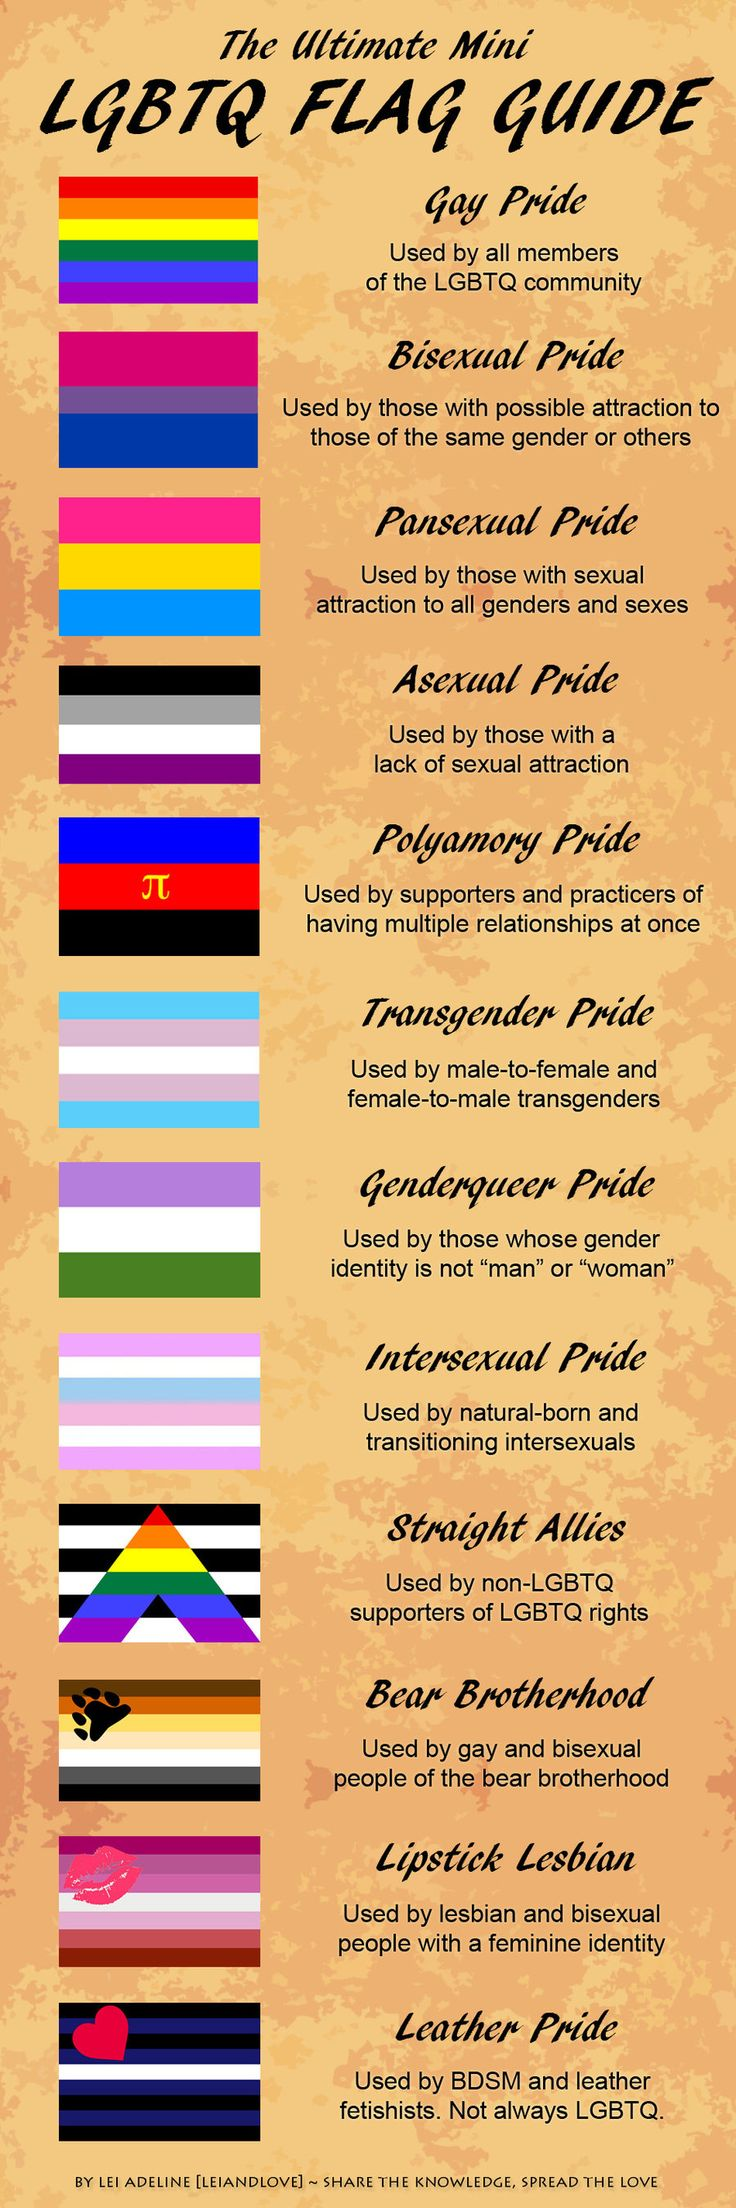 "LGBTQ Flag Guide  I guess you could say i'm a ""Lipstick Lesbian"" but i think i'll just stick with the generic pride flag"